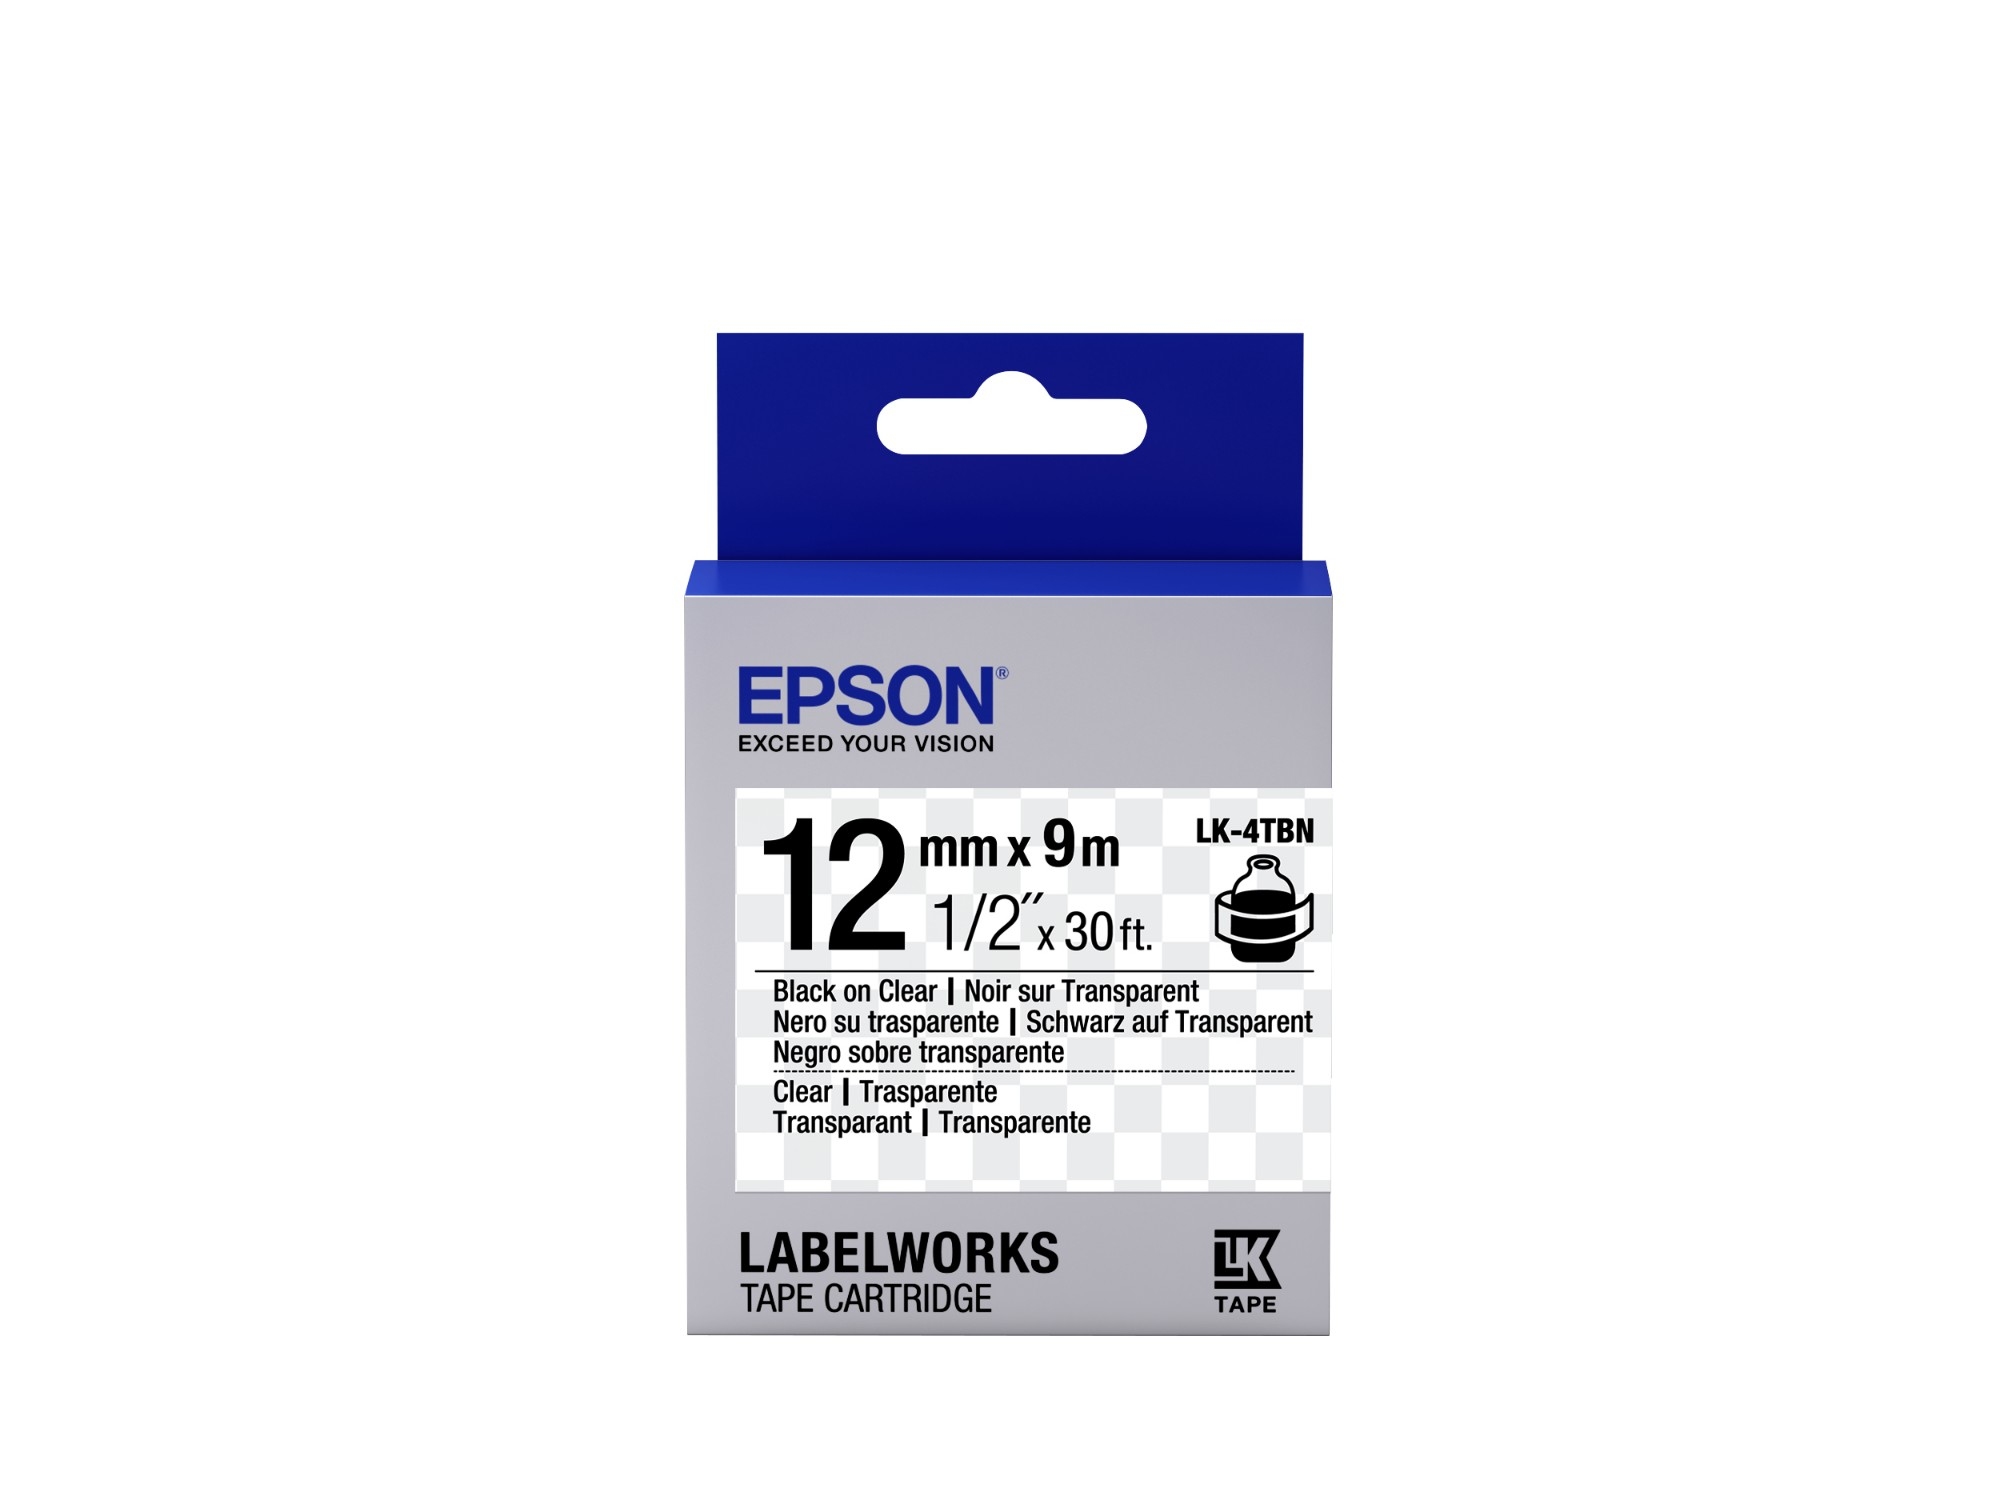 Epson Transparent Tape- LK-4TBN Clear Blk/Clear 12/9